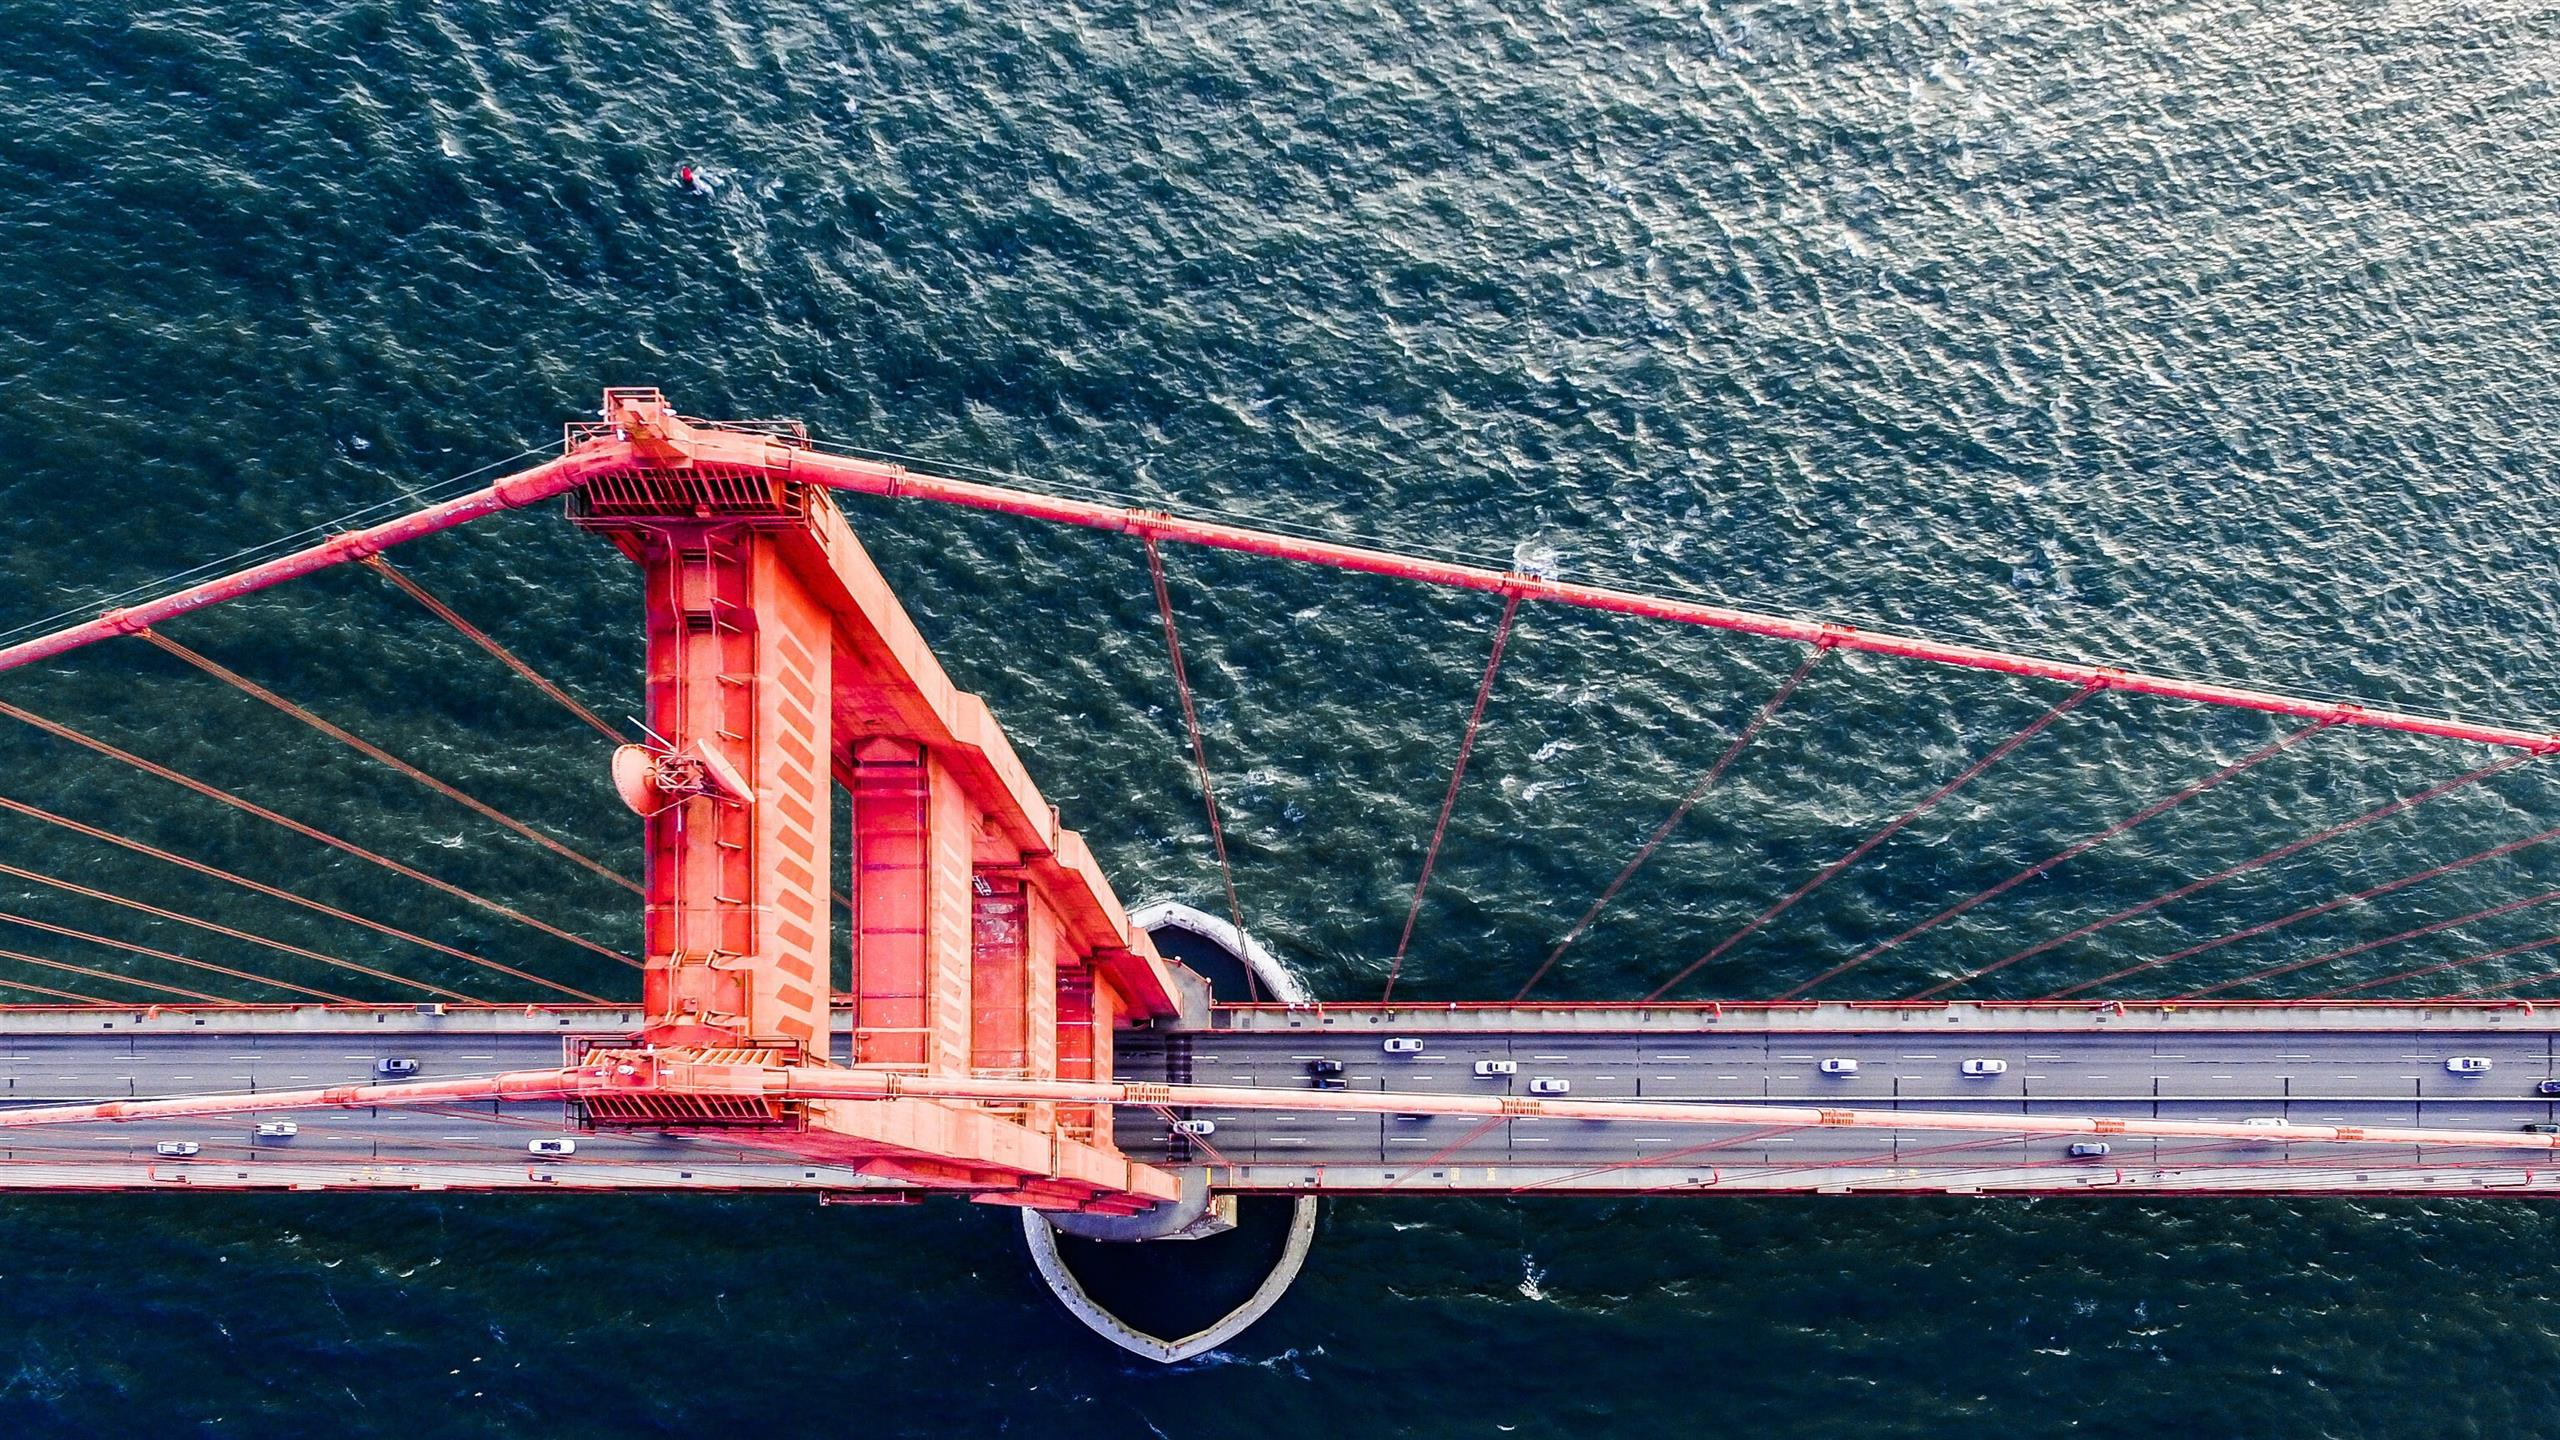 2560x1440 Awesome Top View of Golden Gate Bridge California US Wallpaper